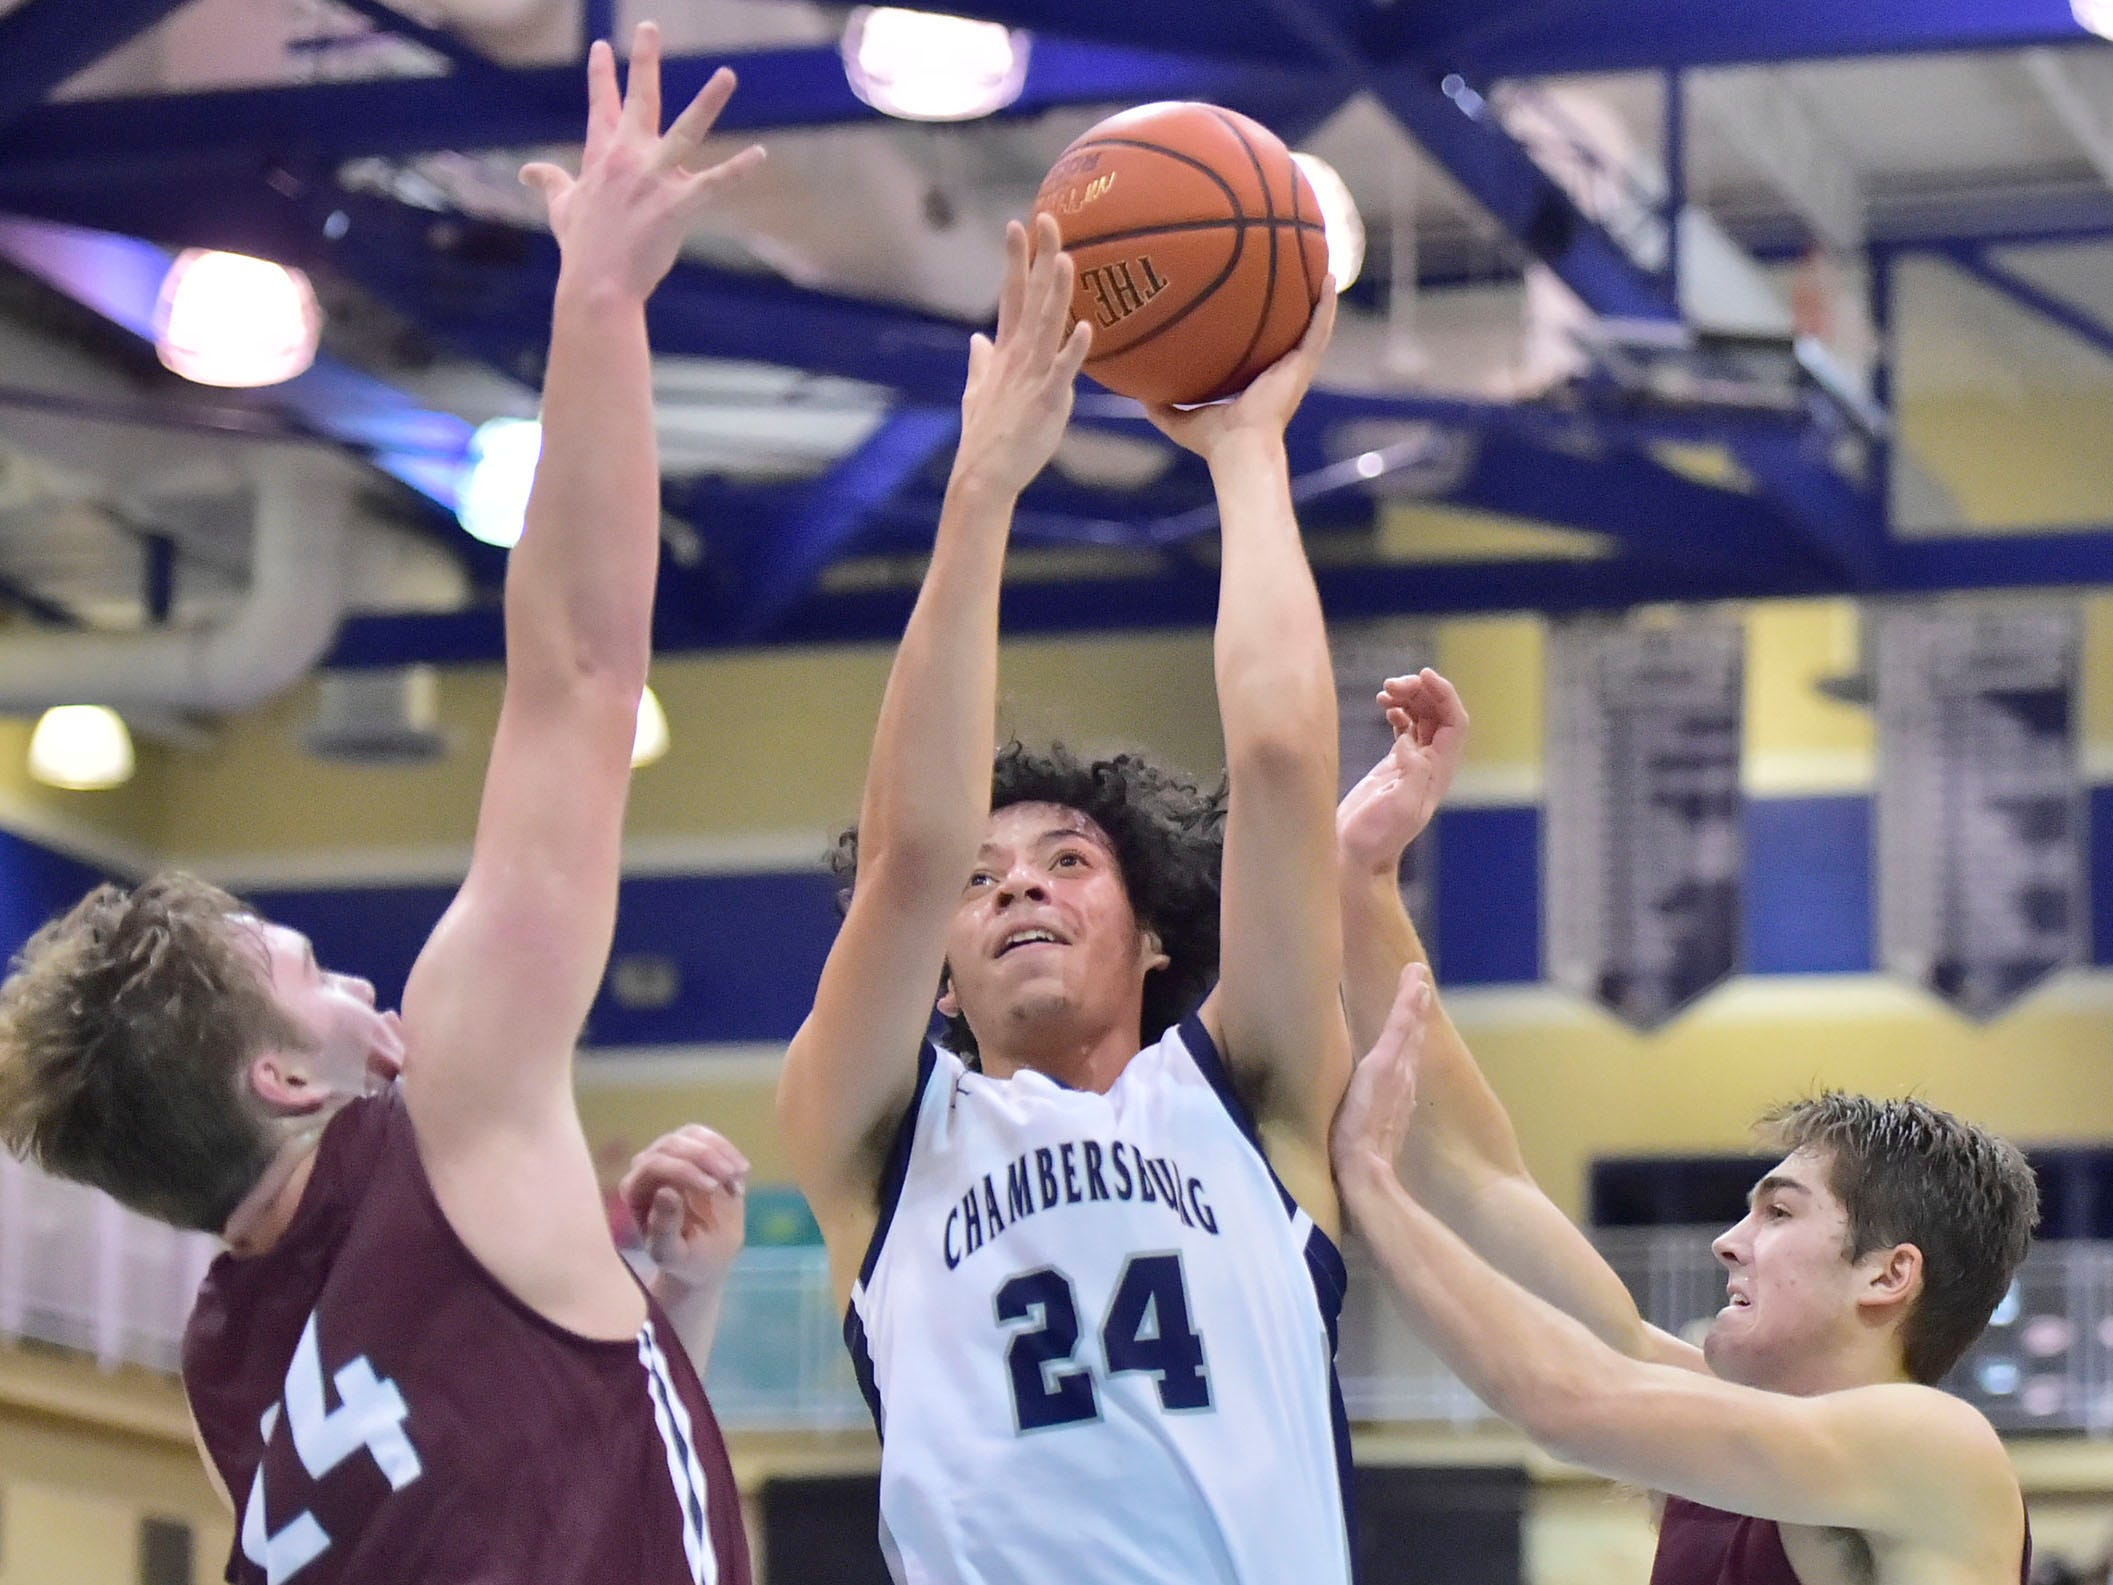 Chambersburg's Ty Holsopple (24) drives to the basket. Chambersburg dropped a buzzer-beater 42-40 to State College during  D3 basketball, Friday, Dec. 14, 2018.